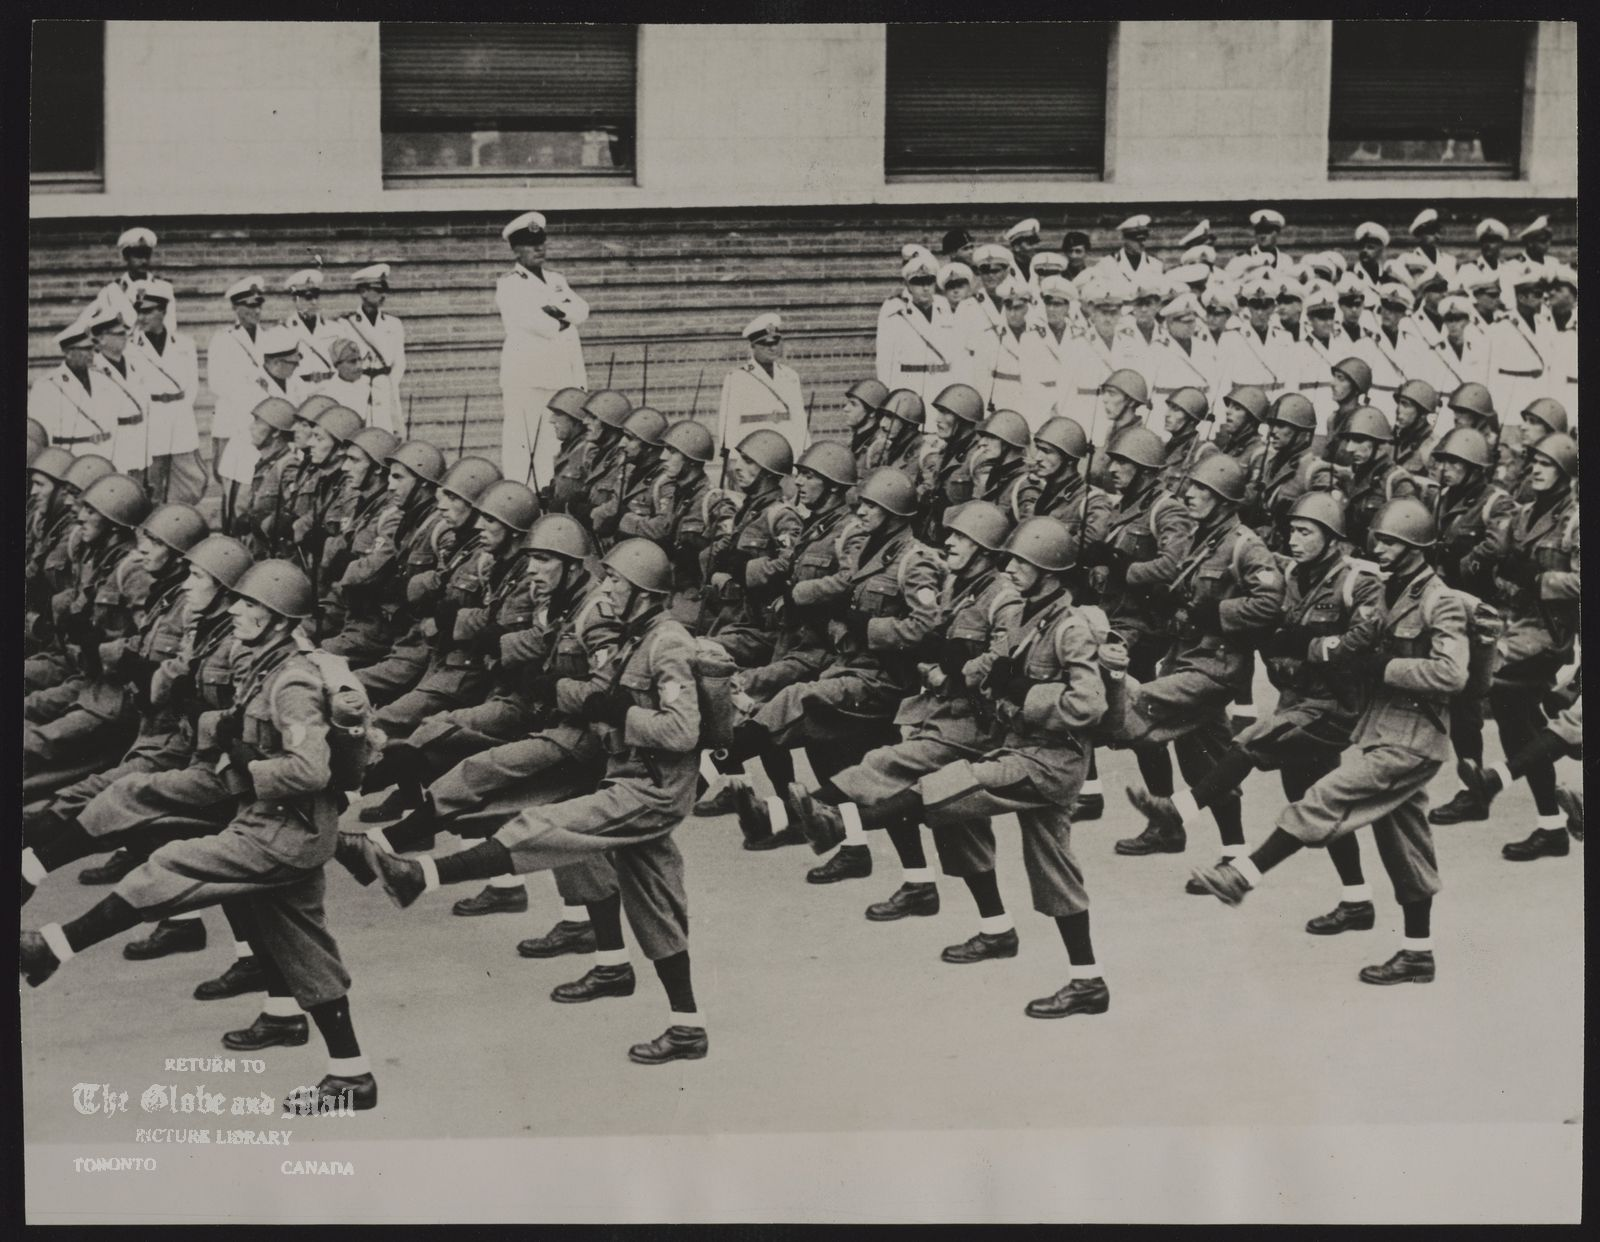 ITALY Army WIDE WORLD PHOTO : pLEASE WATCH CREDIT IL DUCE REVIEWS HIS ROMAN STEPPERS ROME.--PREMIER MUSSOLINI, WITH ARMS FOLDED, IS SHOWN WATCHING SOME OF THE FASCIST MILITIA OFFICERS MARCHING PAST IN THEIR OWN VERSION OF THE